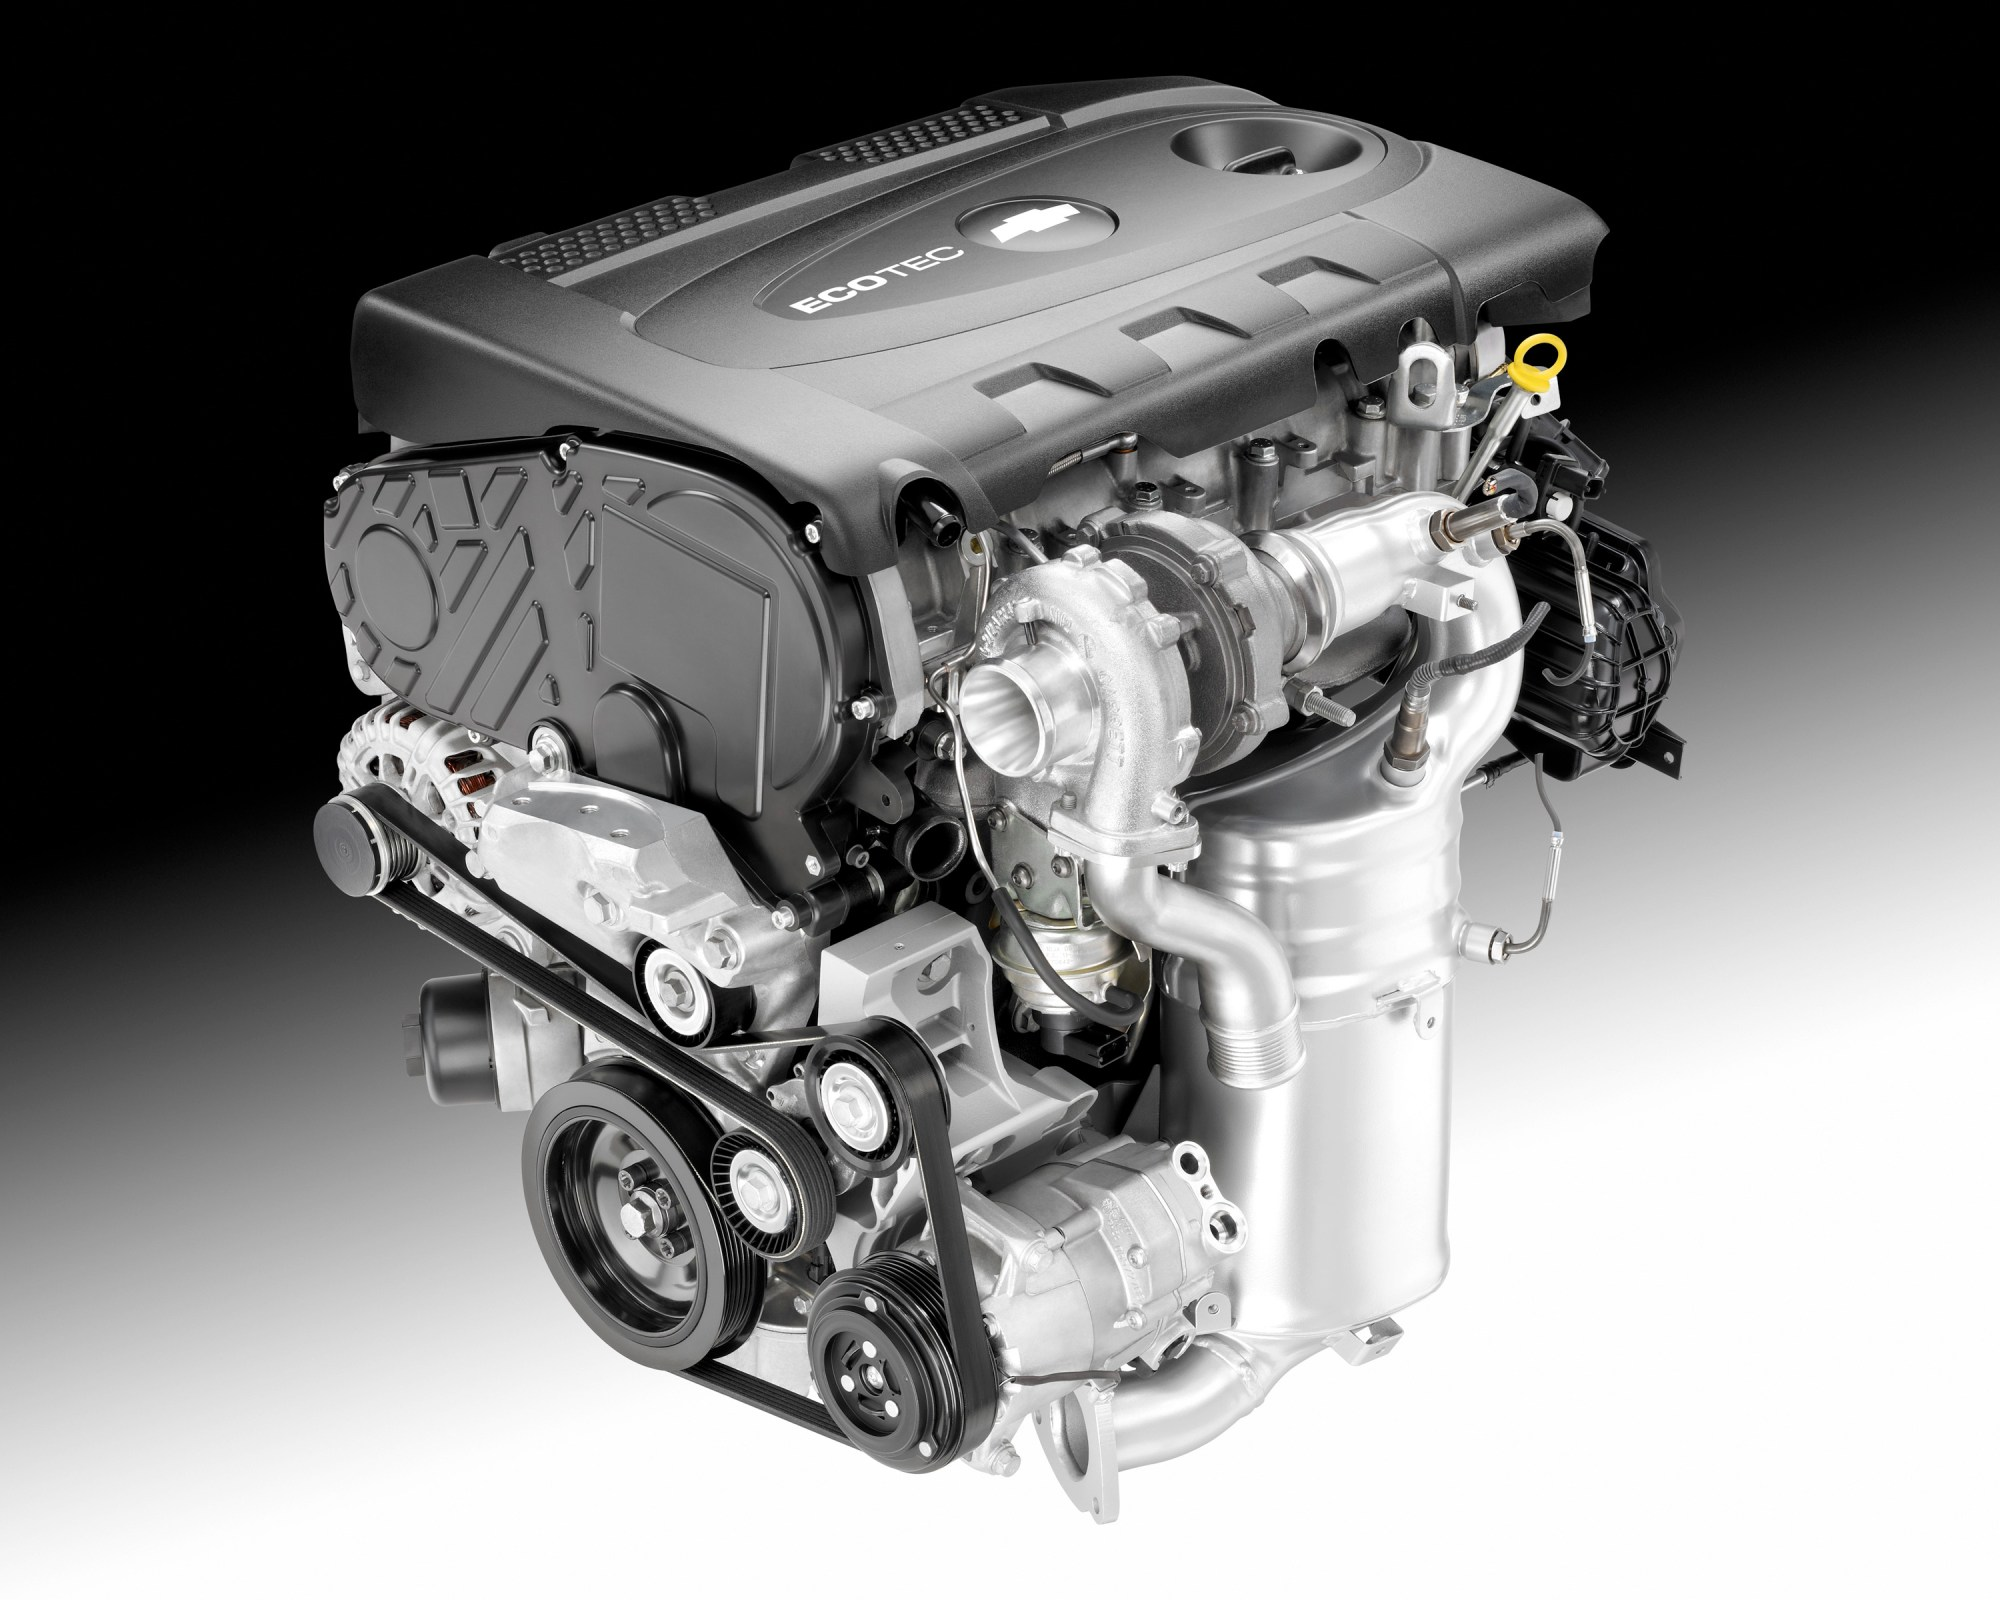 hight resolution of chevy cruze 1 4 turbo engine chevy circuit diagrams wiring diagram rules